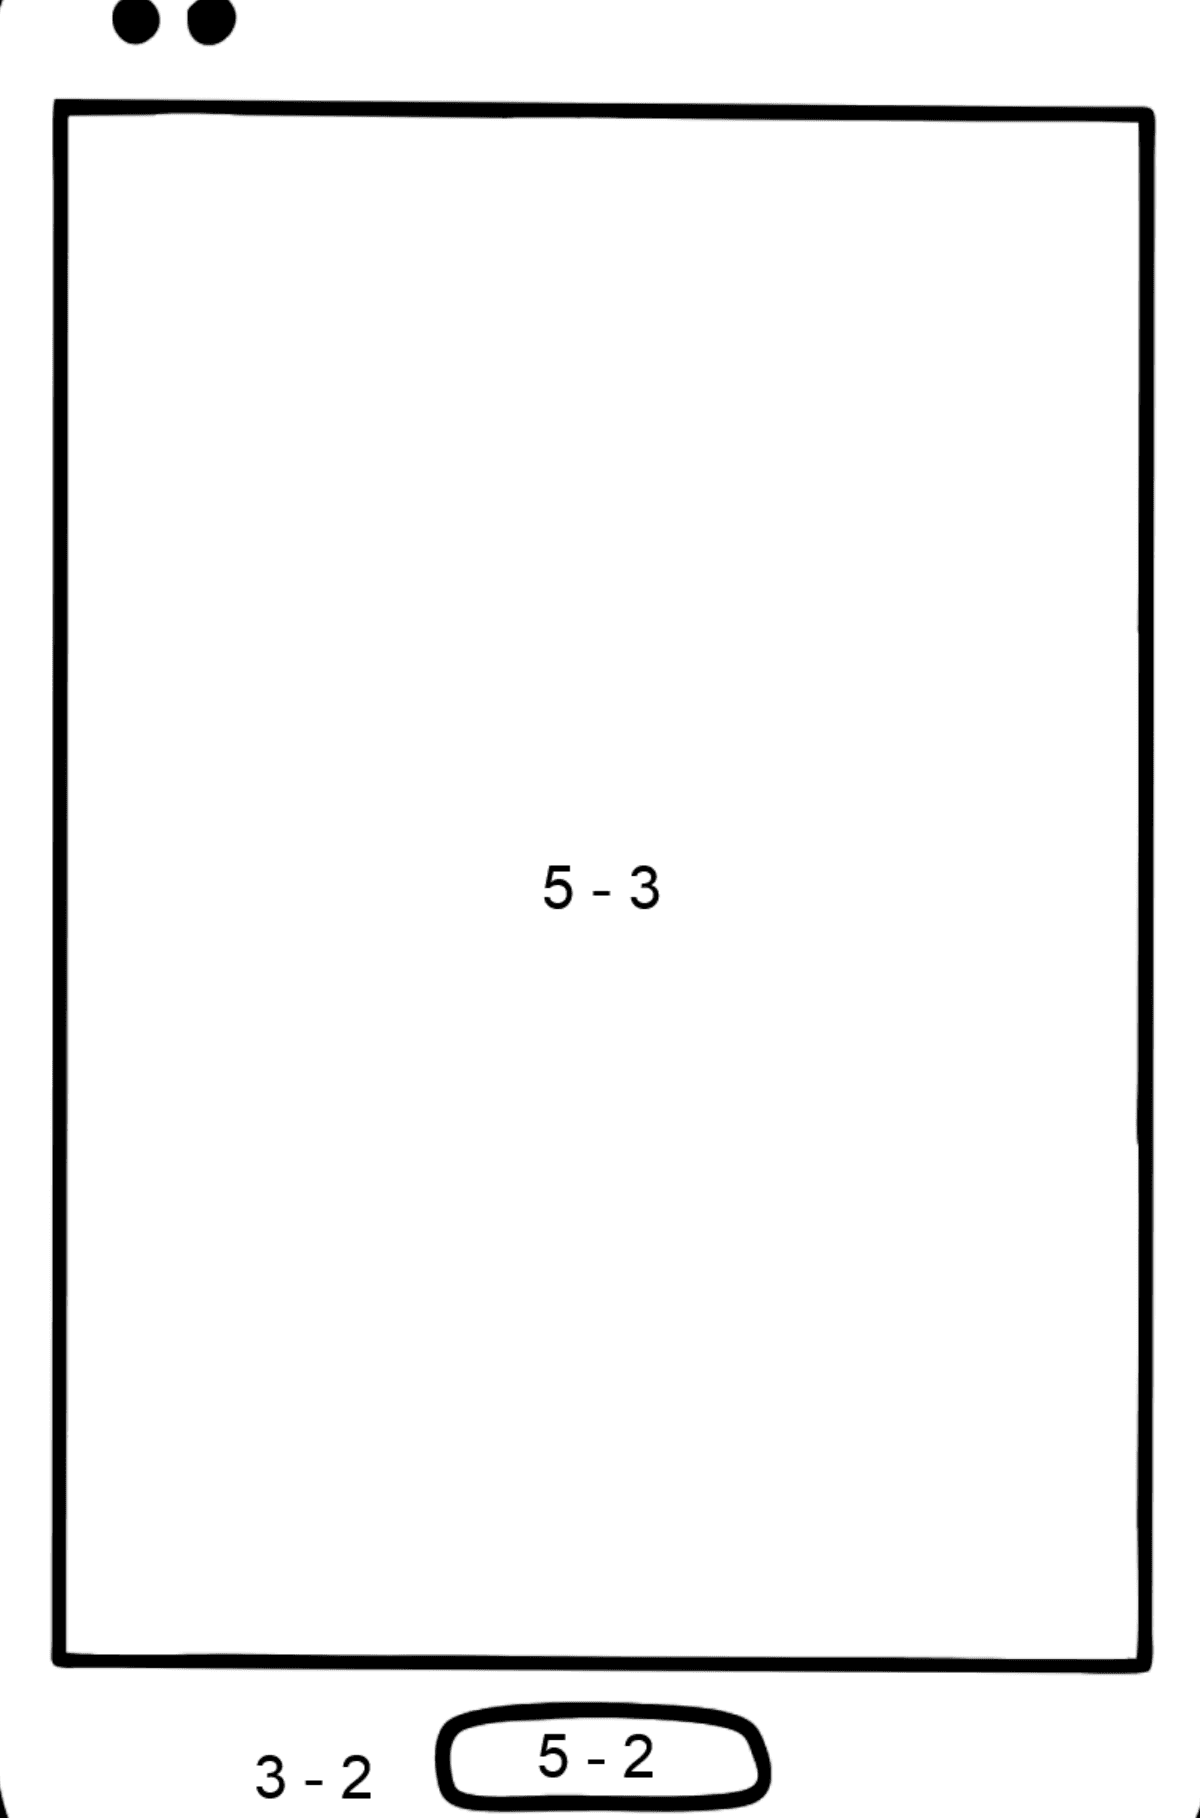 Mobile Phone coloring page - Math Coloring - Subtraction for Kids